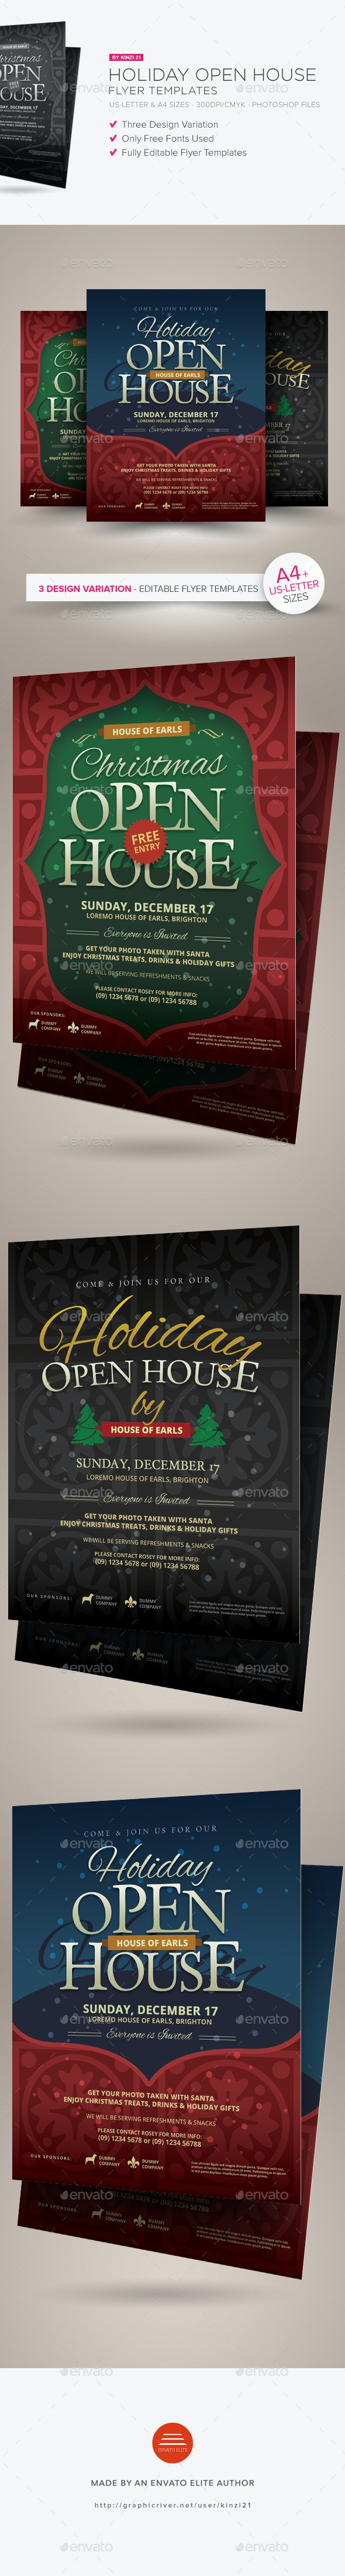 Holiday Open House Flyer Templates - Holidays Events